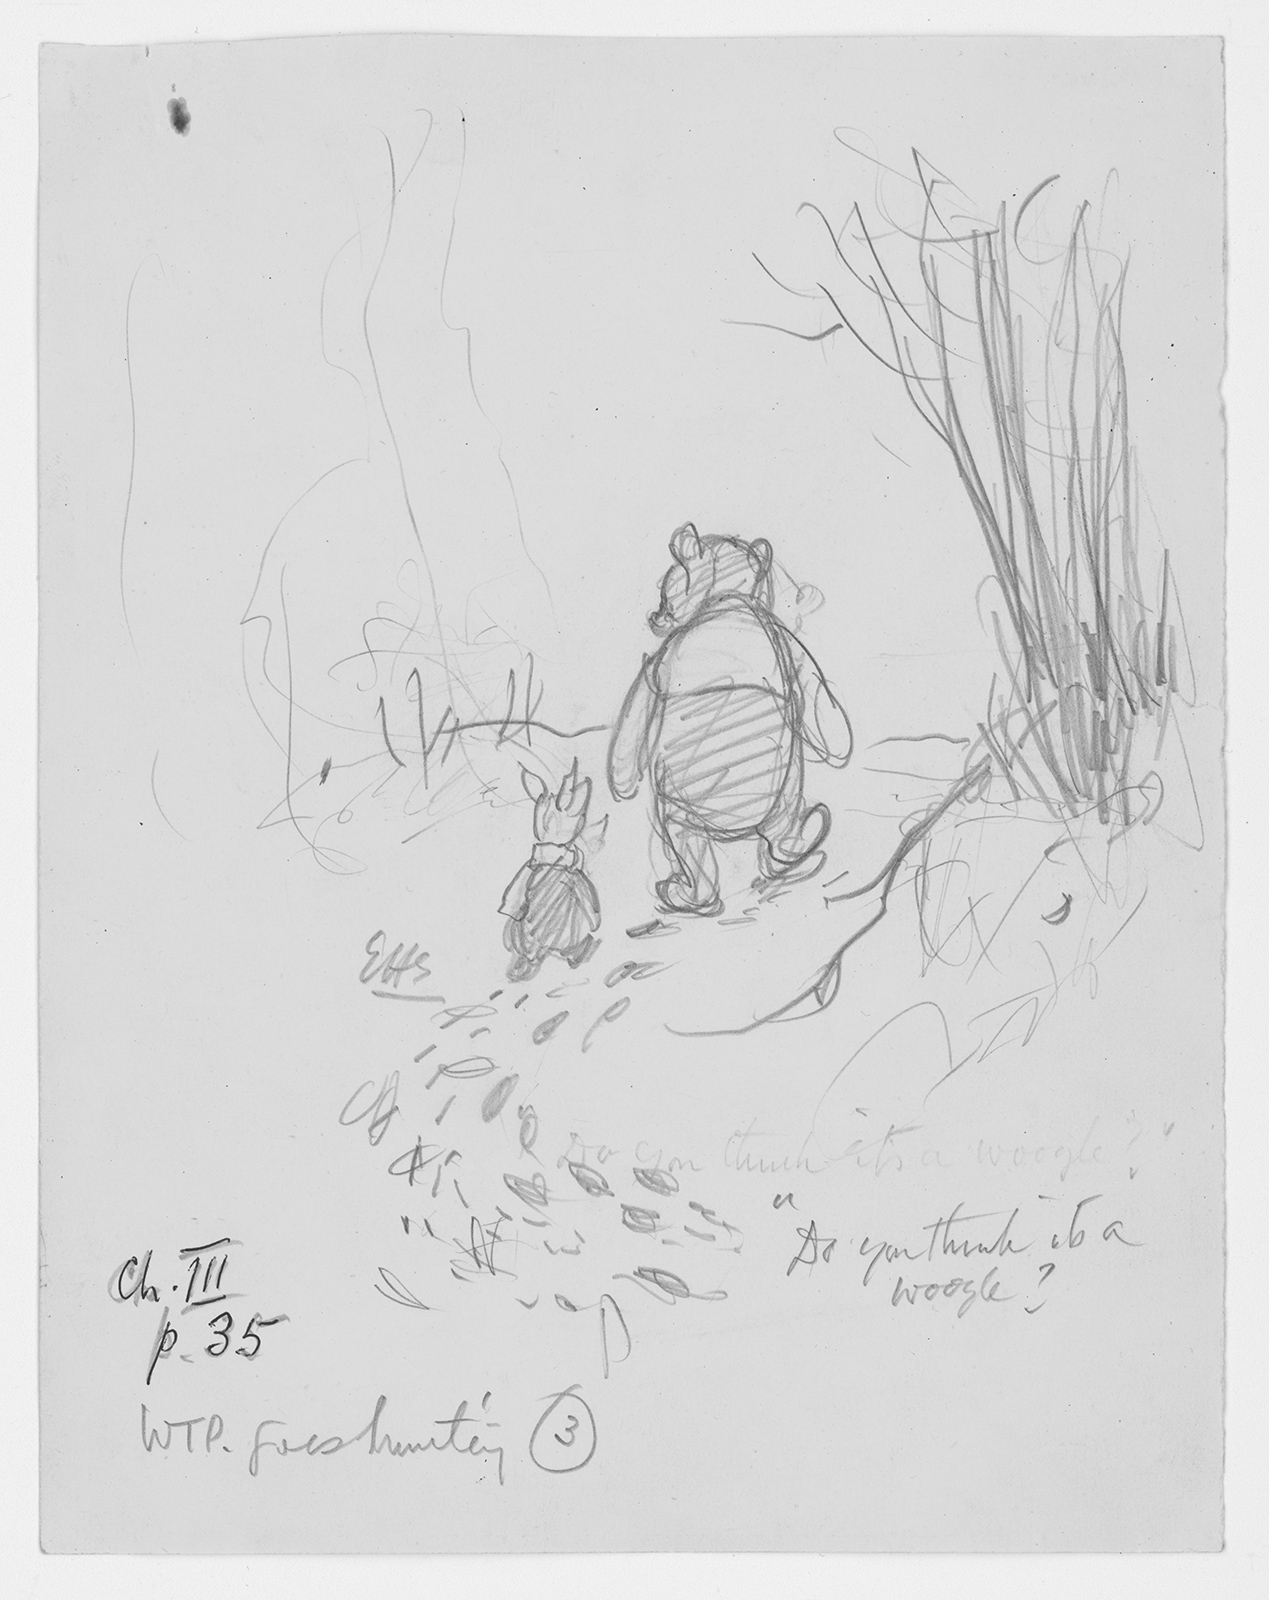 Early sketch of Winnie-the-Pooh